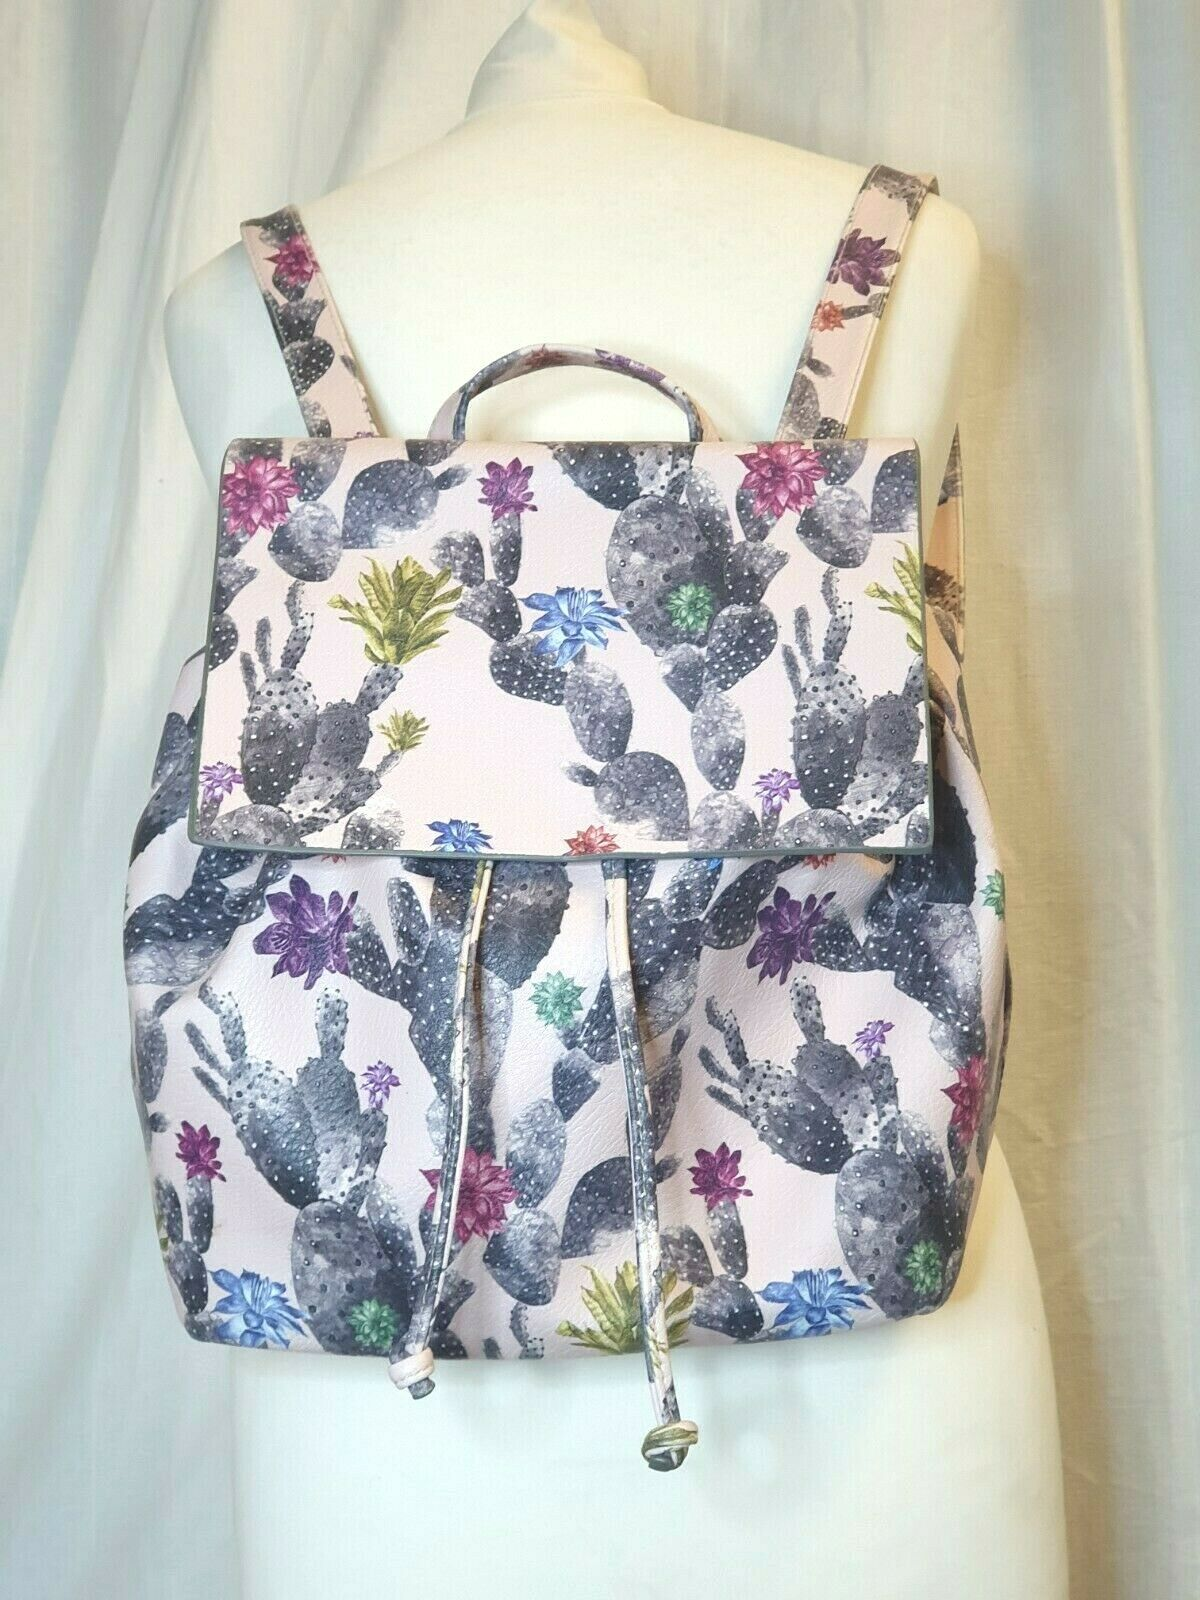 PAPERCHASE Rucksack Backpack - Pale Pink Cactus Print - Good Size - Long Straps